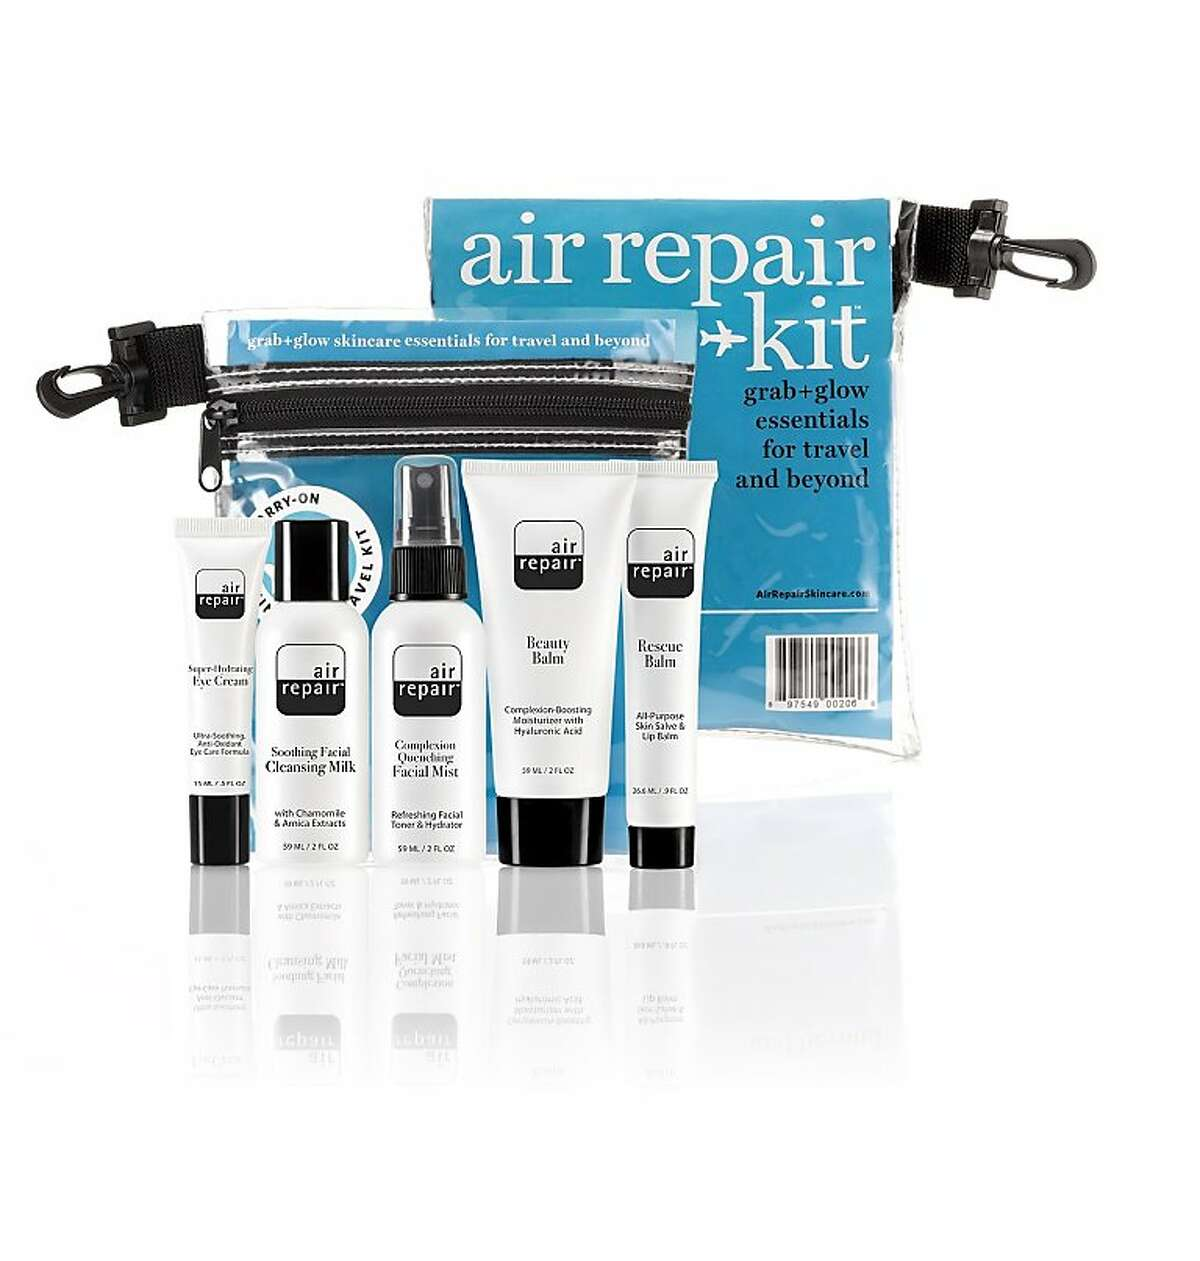 The Air Repair® Skincare Kit retails for $34.95. The kit includes: 1. Air Repair Soothing Facial Cleansing Milk: Contains chamomile and arnica extracts. 2. Air Repair Complexion Quenching Facial Mist: Refreshing facial toner and hydrator. 3. Air Repair Rescue Balm: All Purpose skin salve and lip balm. 4. Air Repair Beauty Balm: A complexion-boosting moisturizer with Hyaluronic Acid. 5. Air Repair Super Hydrating Eye Cream: Soothing line-minimizing formulation.